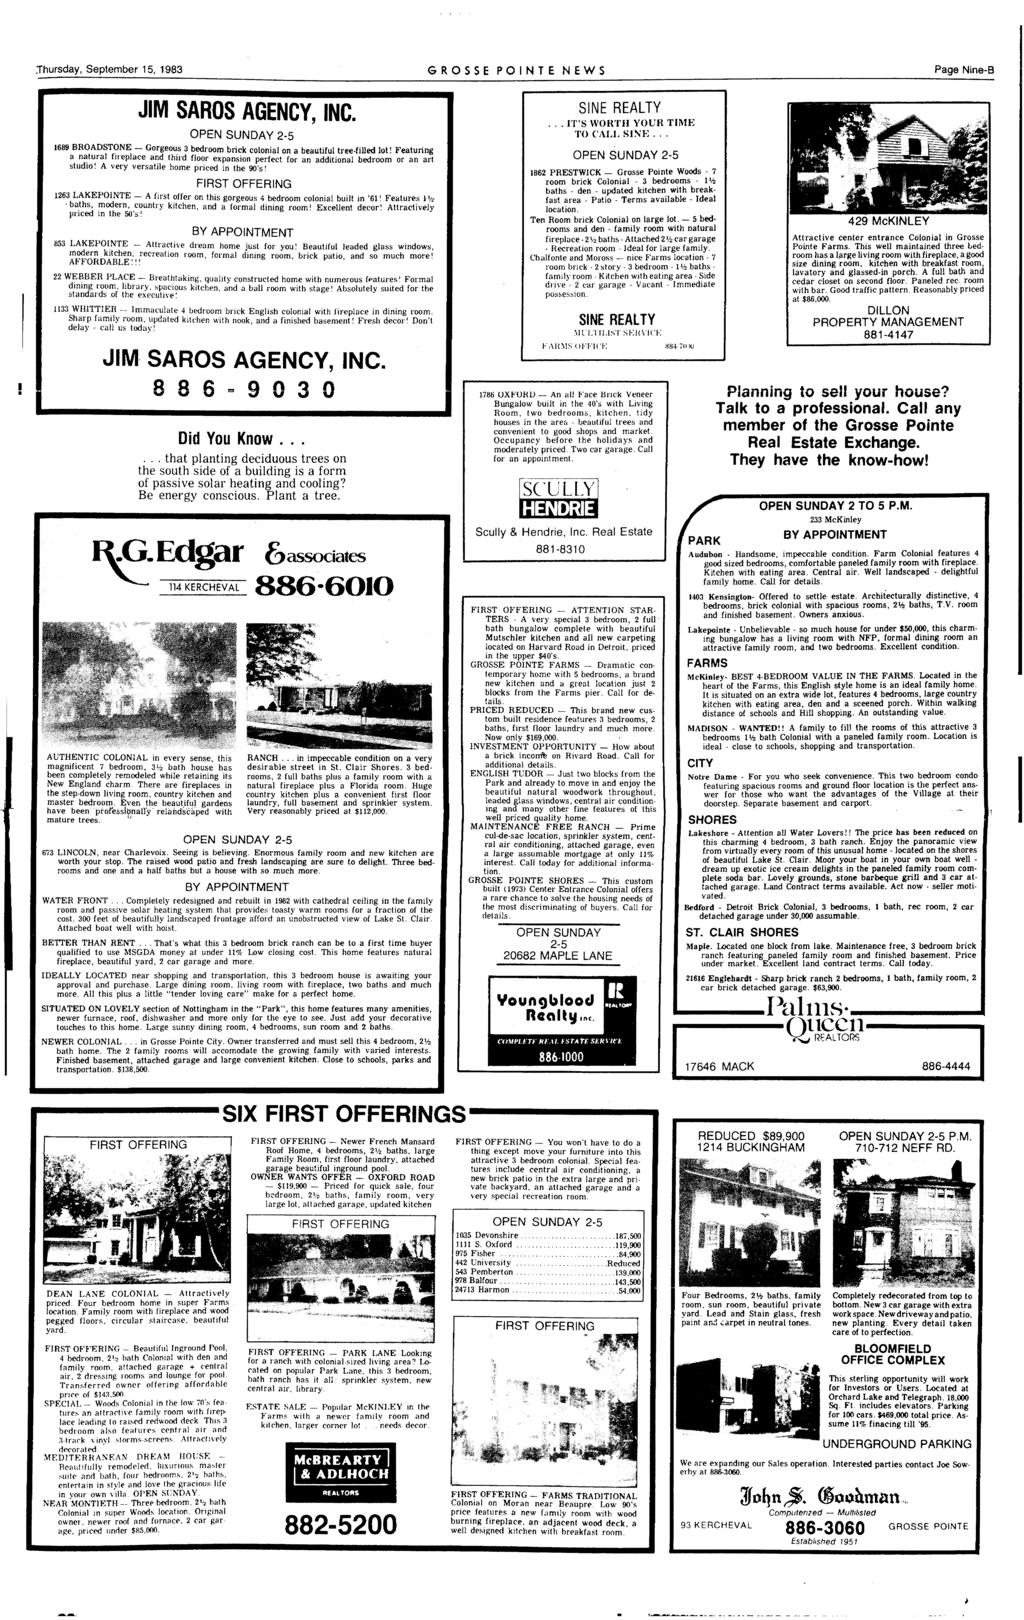 .Thursday, September 15, 1983 GROSSE PONTE NEWS Page Nlne-B JM SAROS AGENCY, NC.